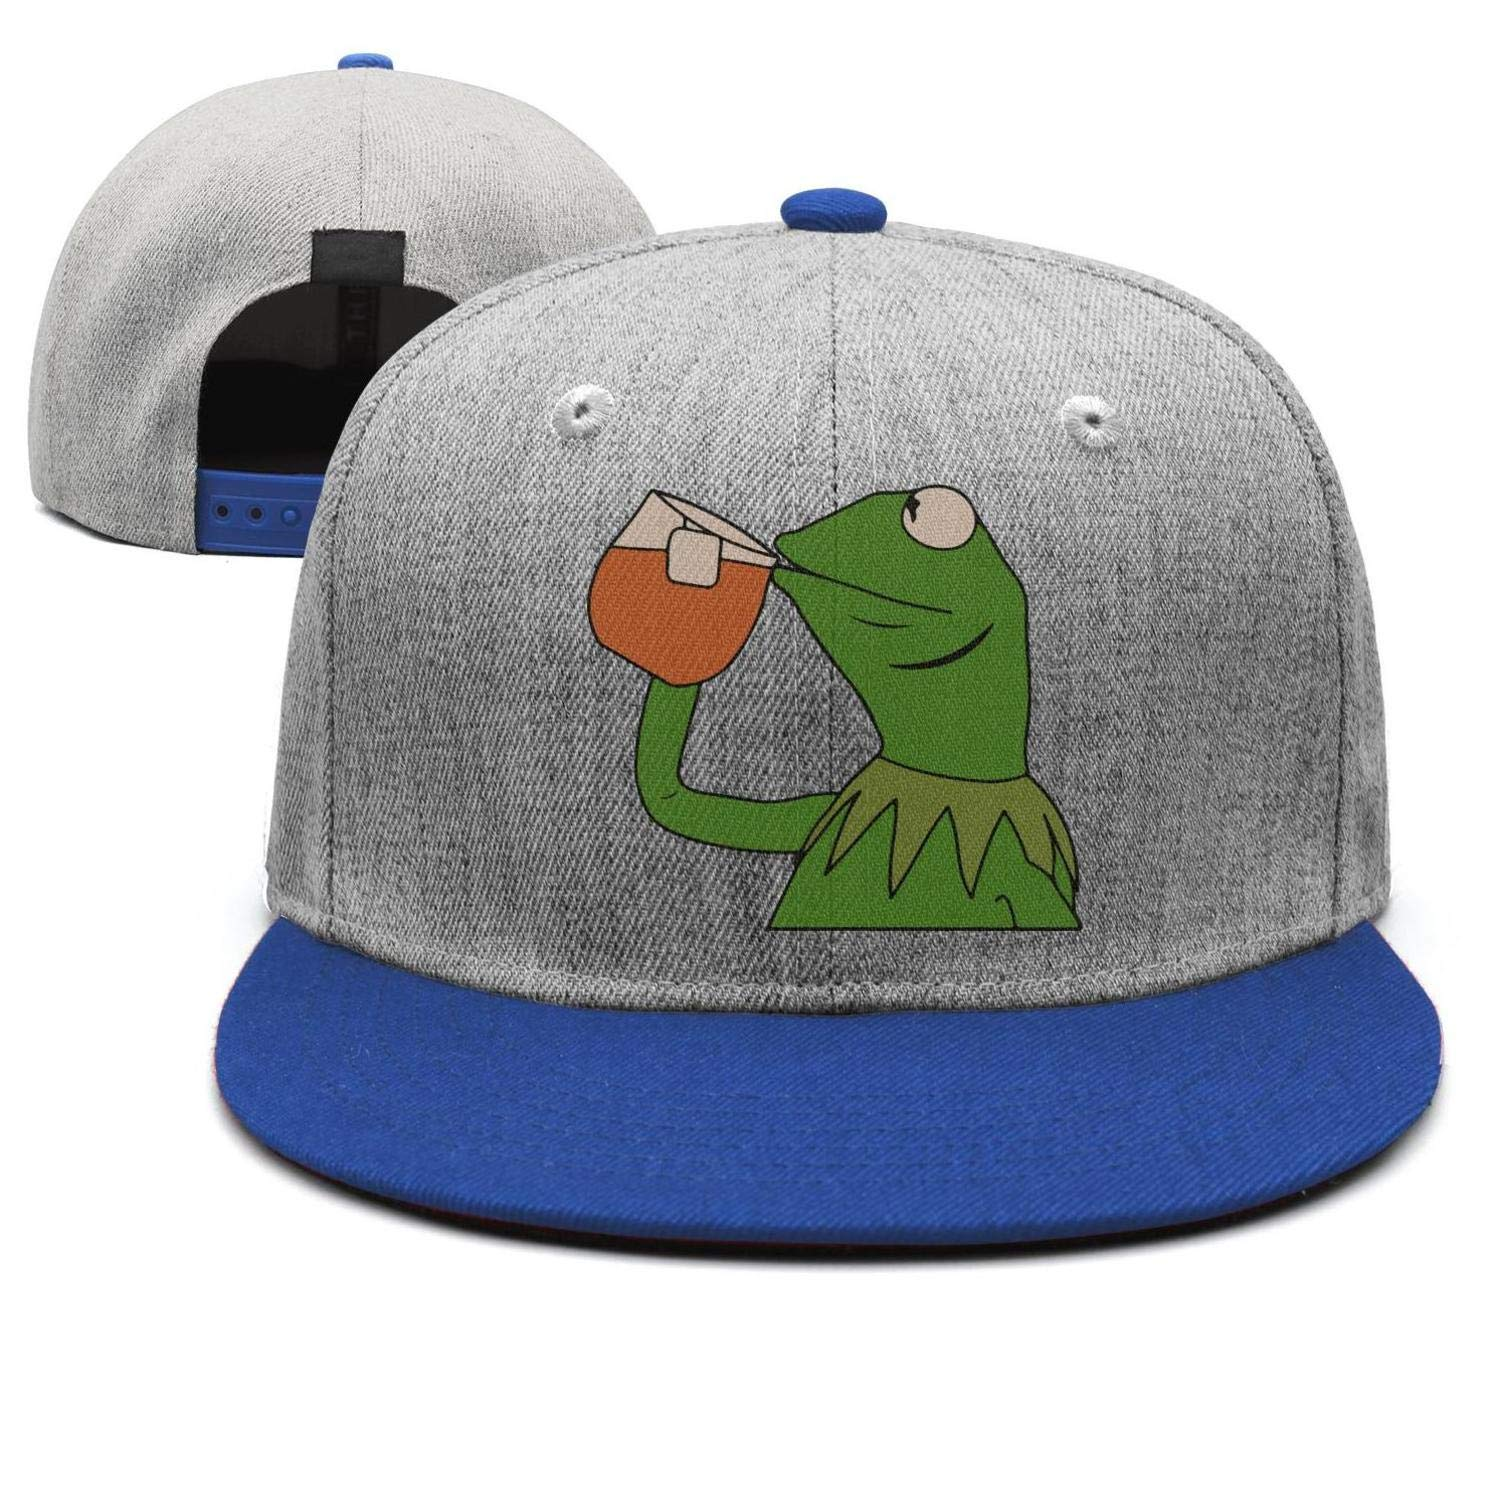 28a3b833691 KERMIT TEA Hat StrapBack none of my business Emoji Frog James meme Cap at  Amazon Men s Clothing store